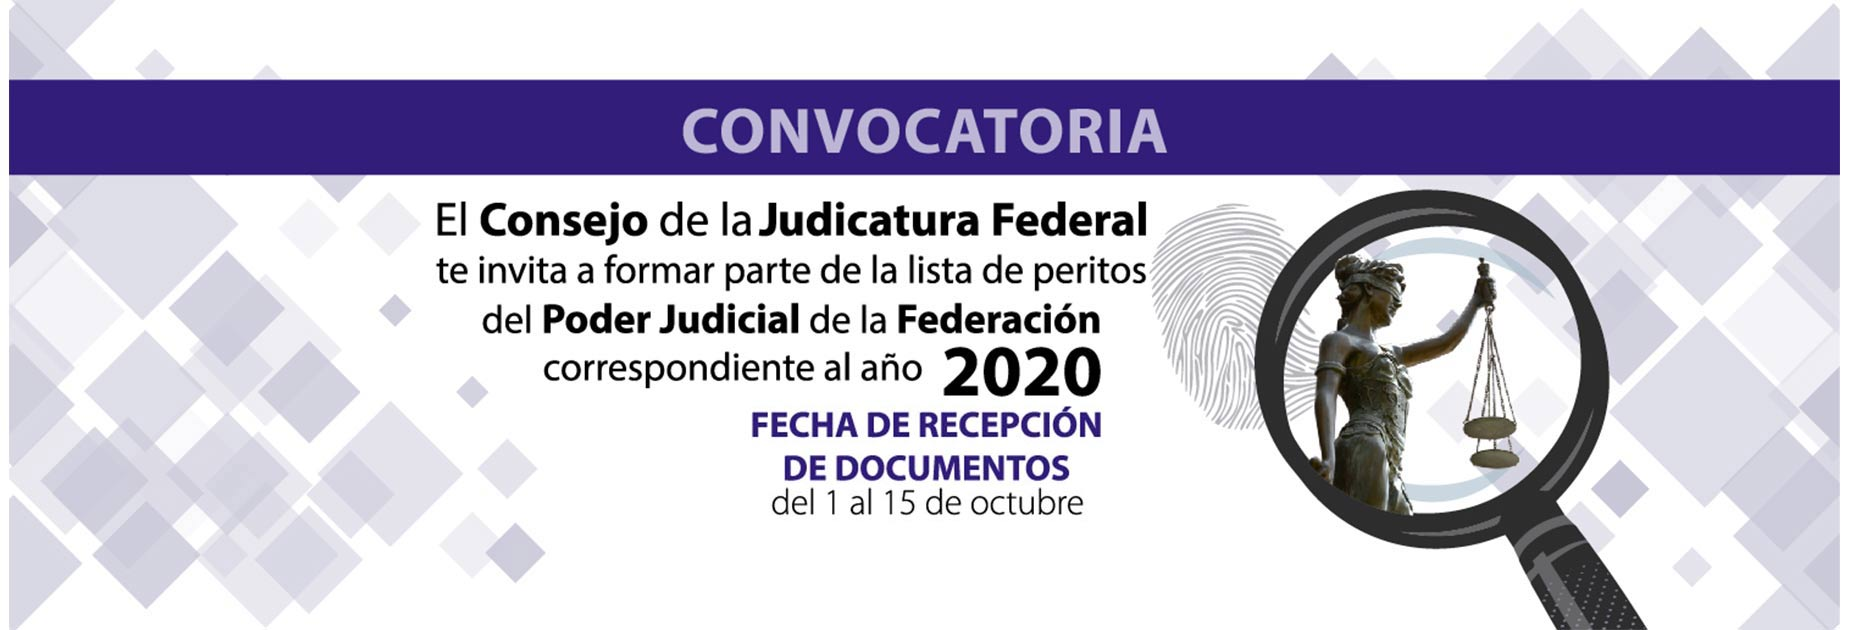 convocatoria peritos 2019